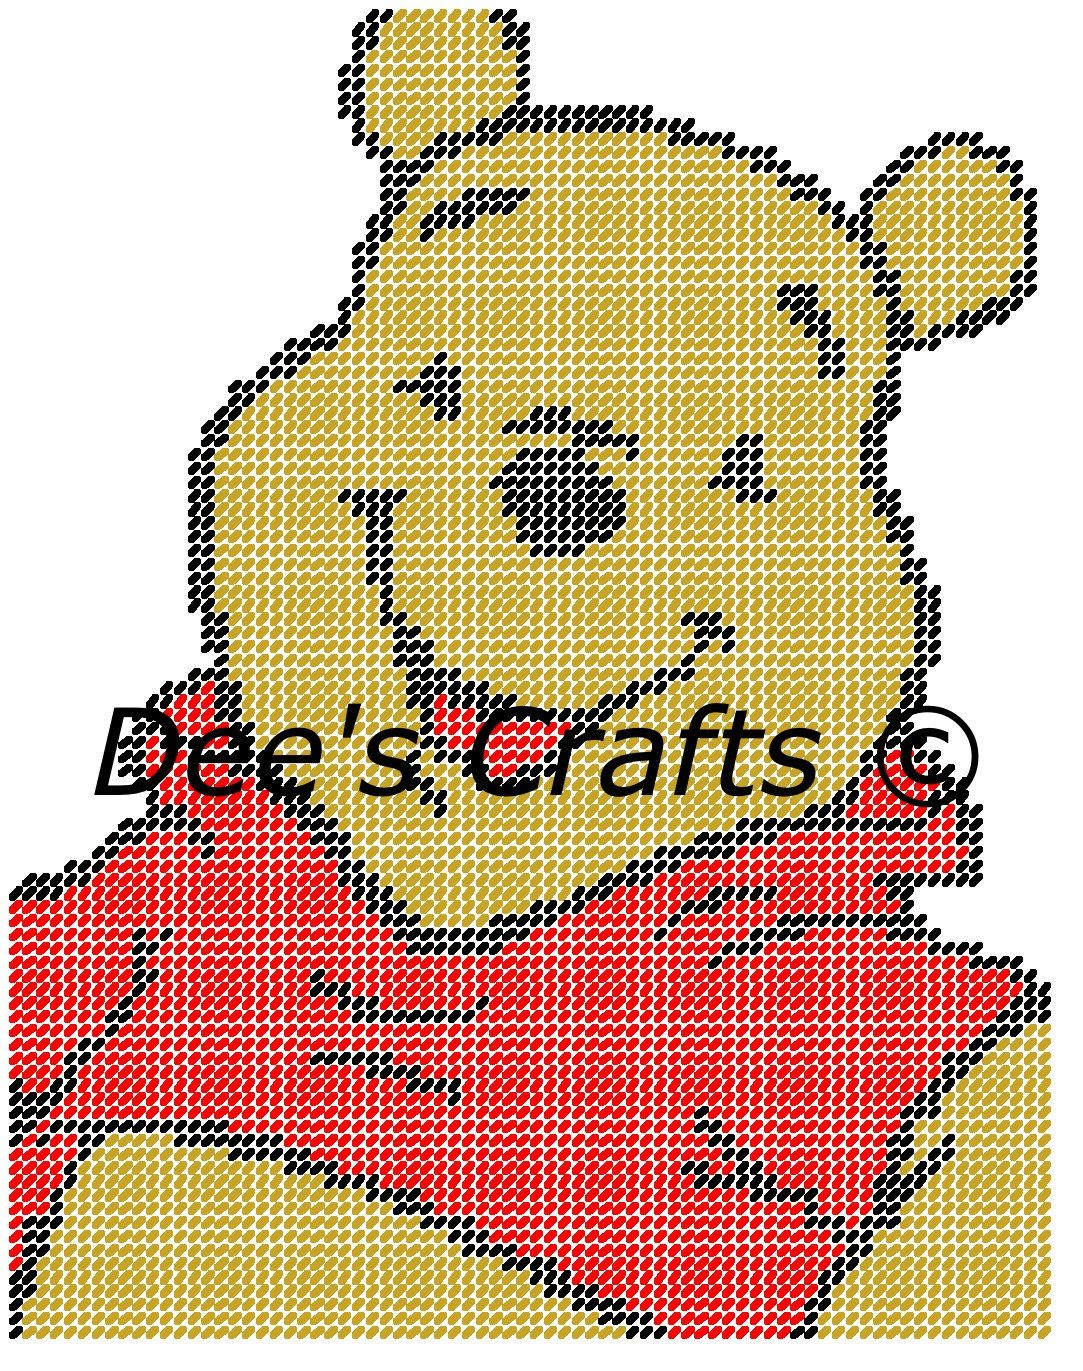 WINNIE the POOH - Disney Collection - CUTOUT - Wall Hanging ...